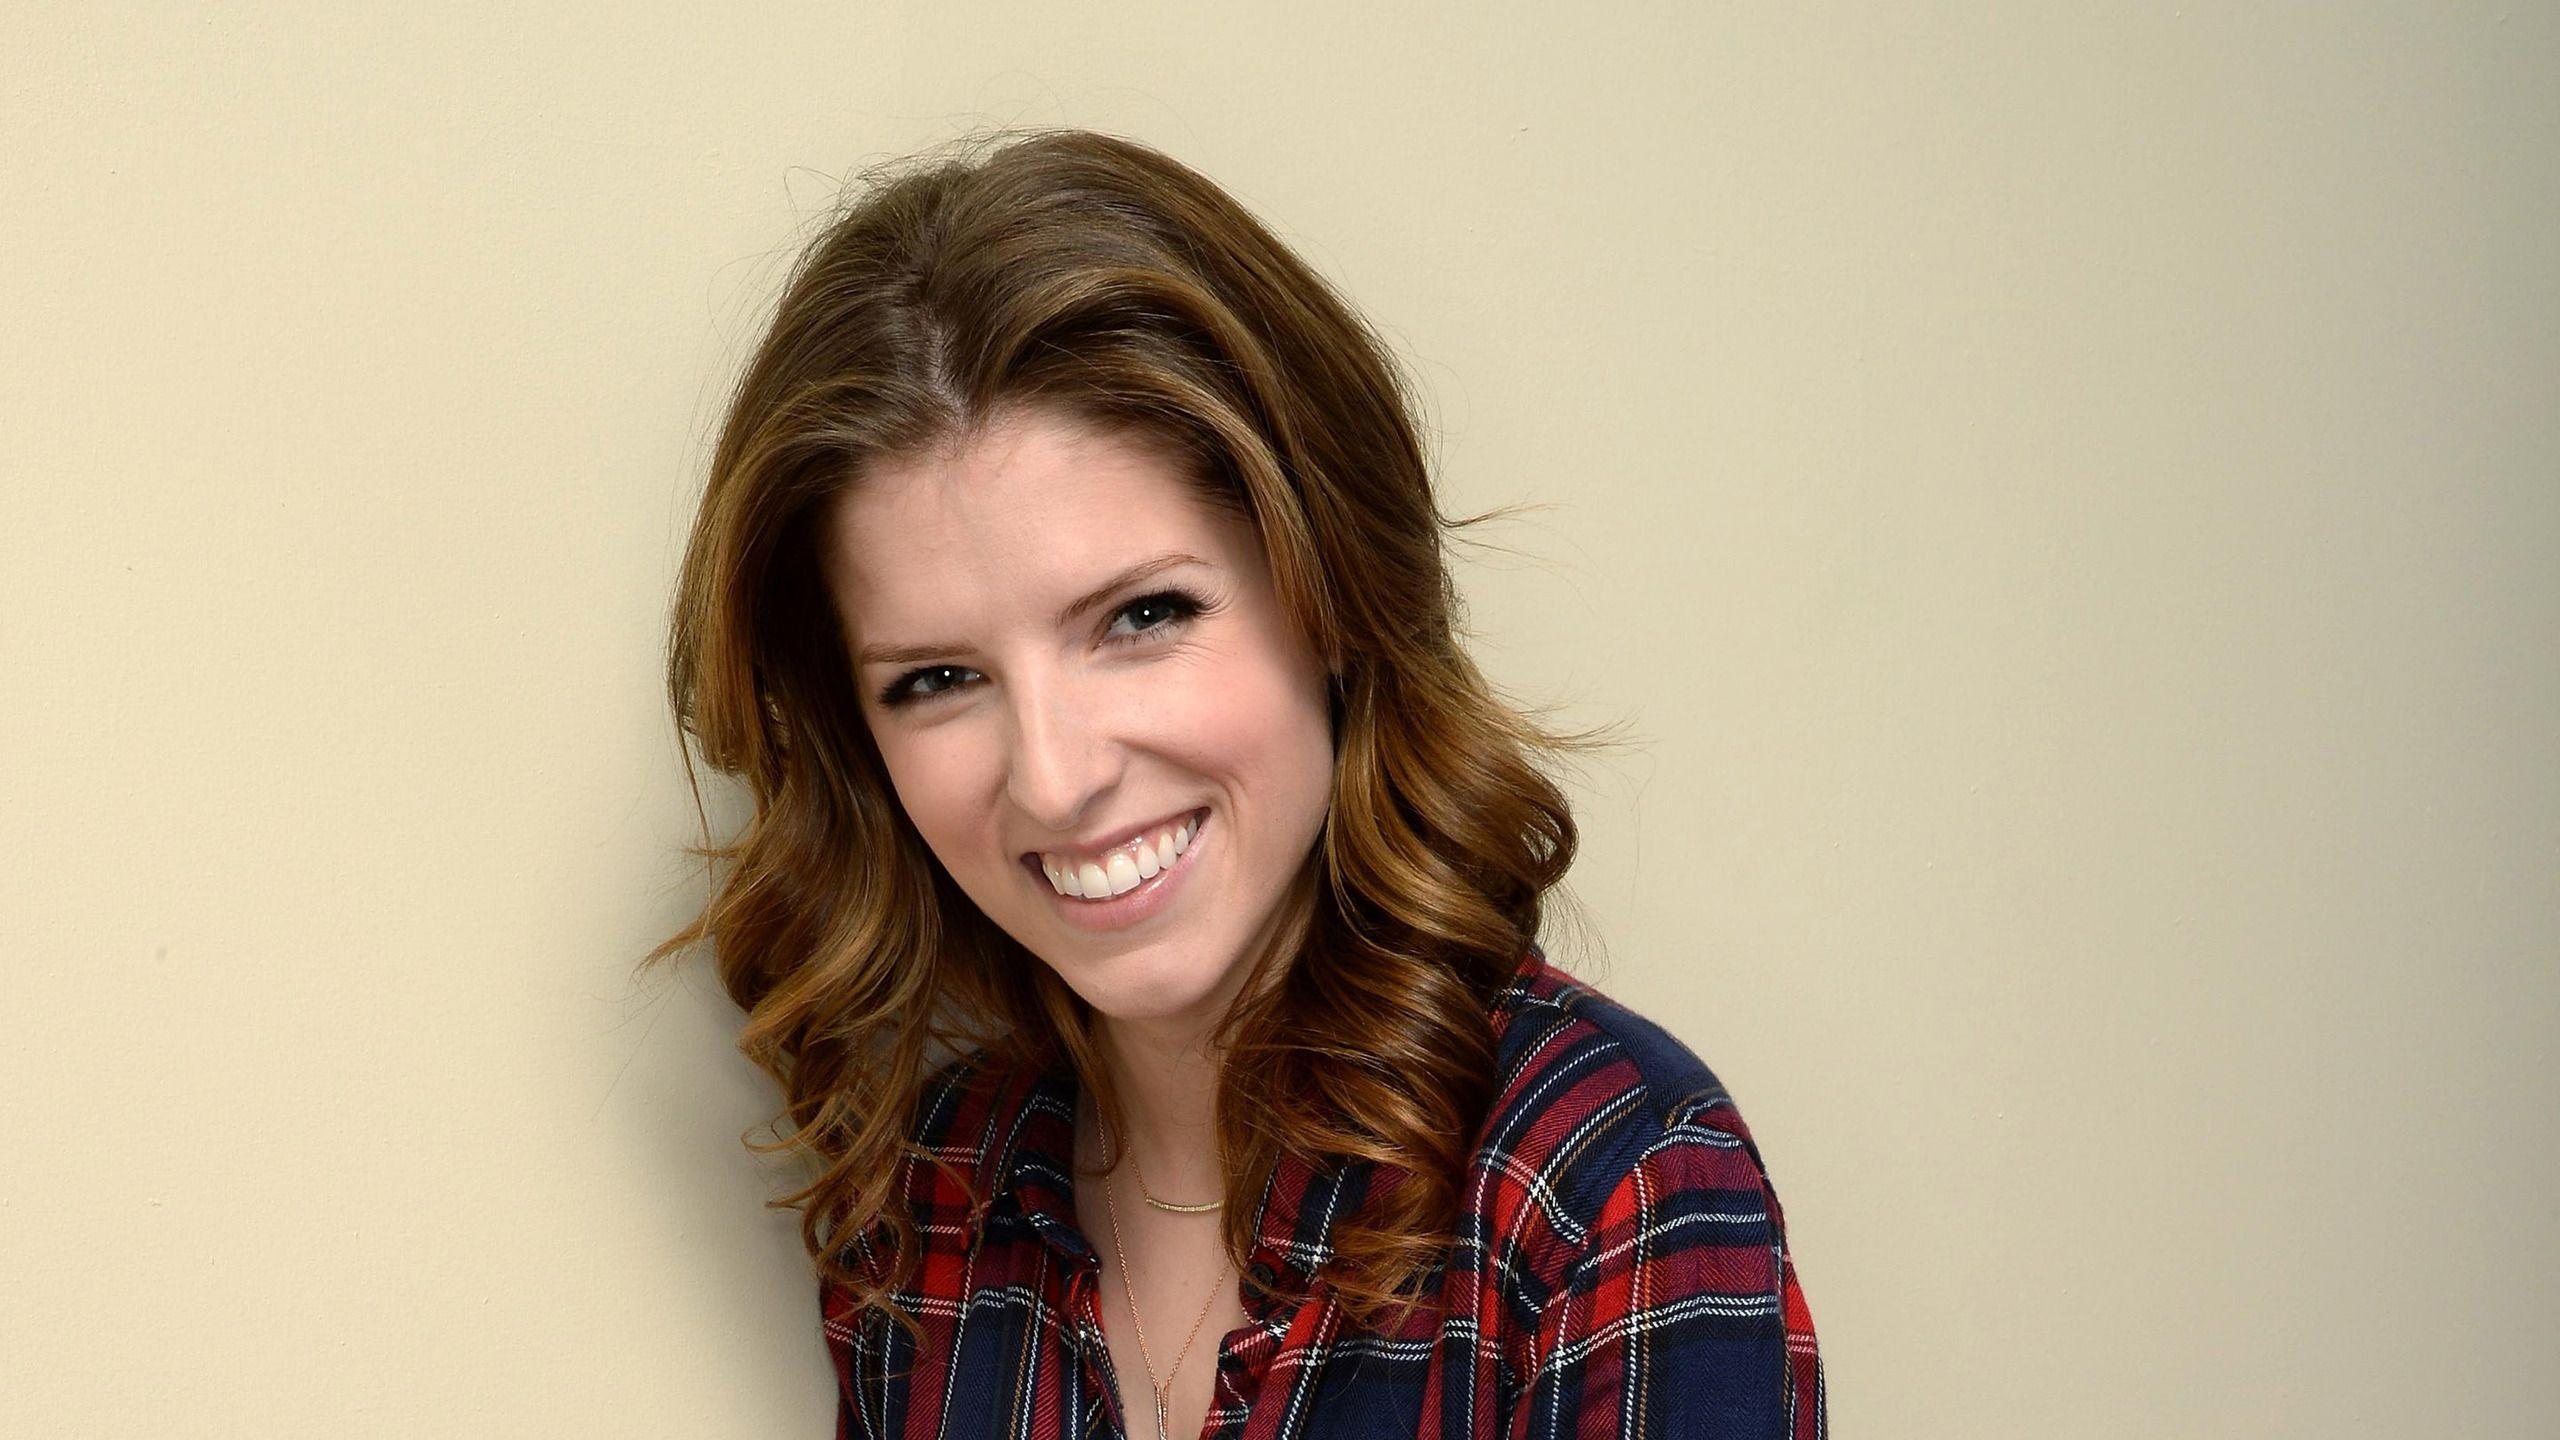 Anna Kendrick Wallpapers Image Photos Pictures Backgrounds